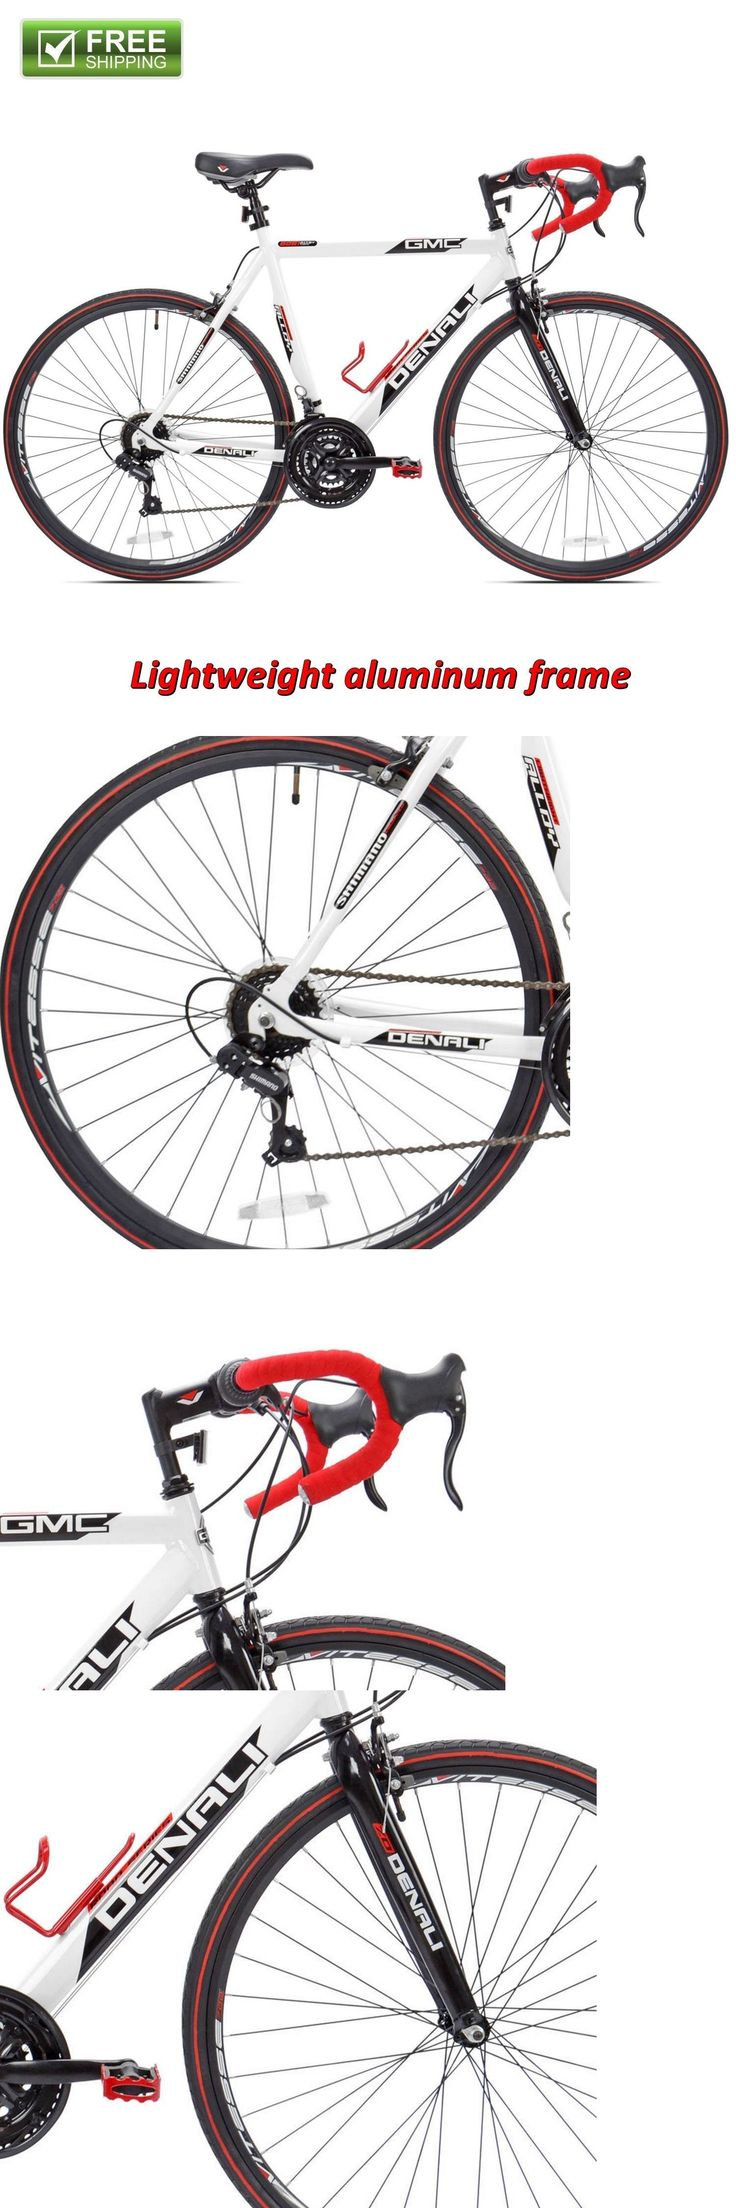 bicycles: 22.5 Men Road Bike 21-Speed Aluminum Frame Bicycle White/Red -> BUY IT NOW ONLY: $199.53 on eBay!